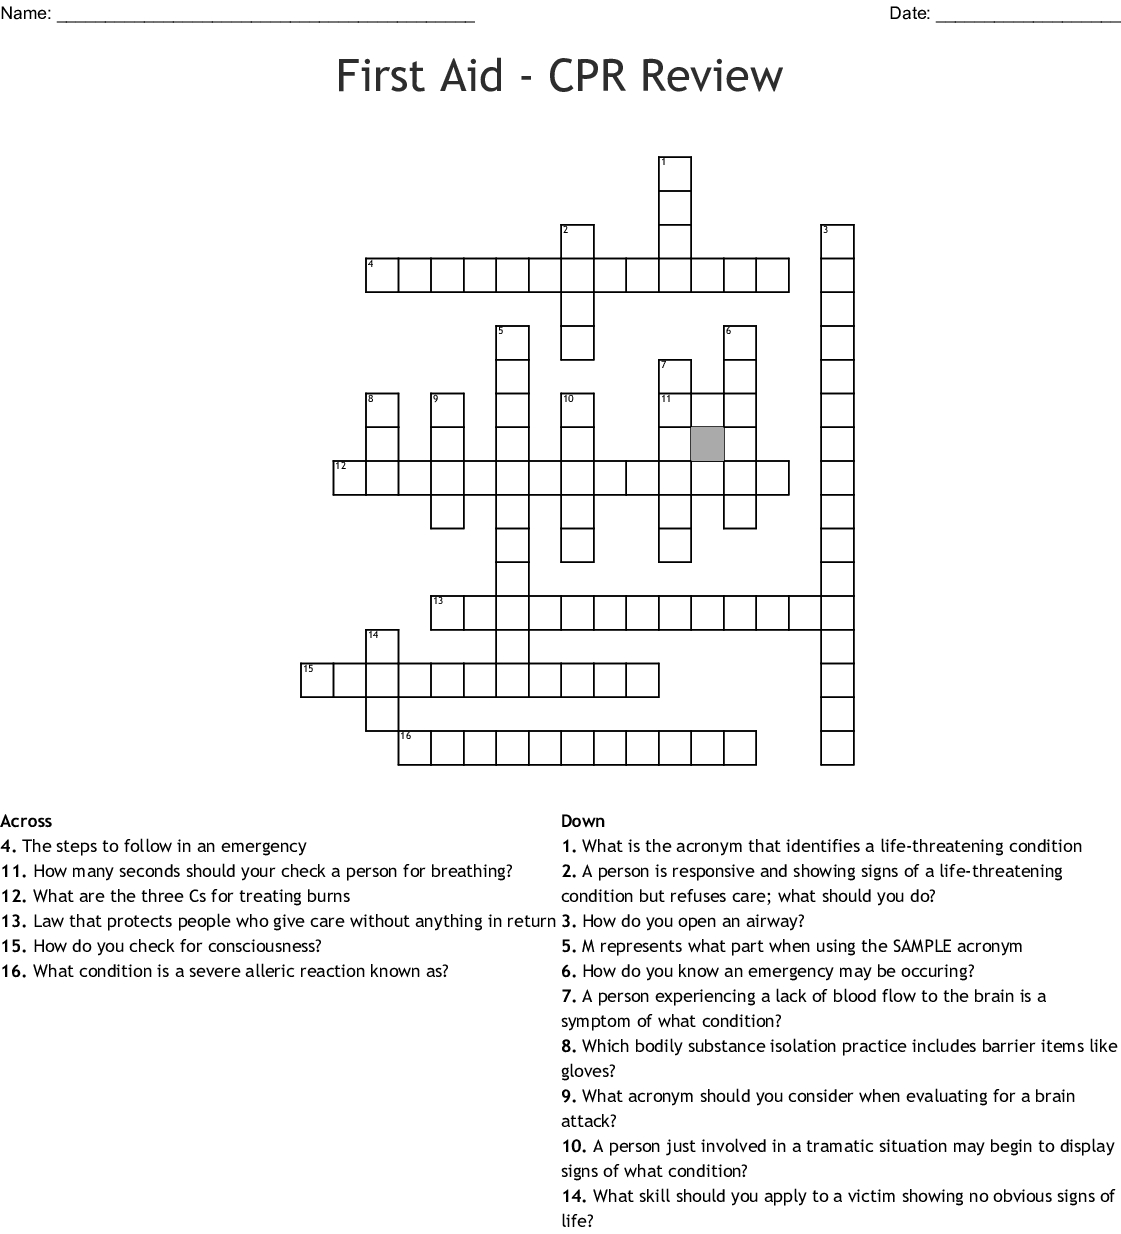 First Aid - Cpr Review Crossword - Wordmint - Printable Crossword Puzzle First Aid